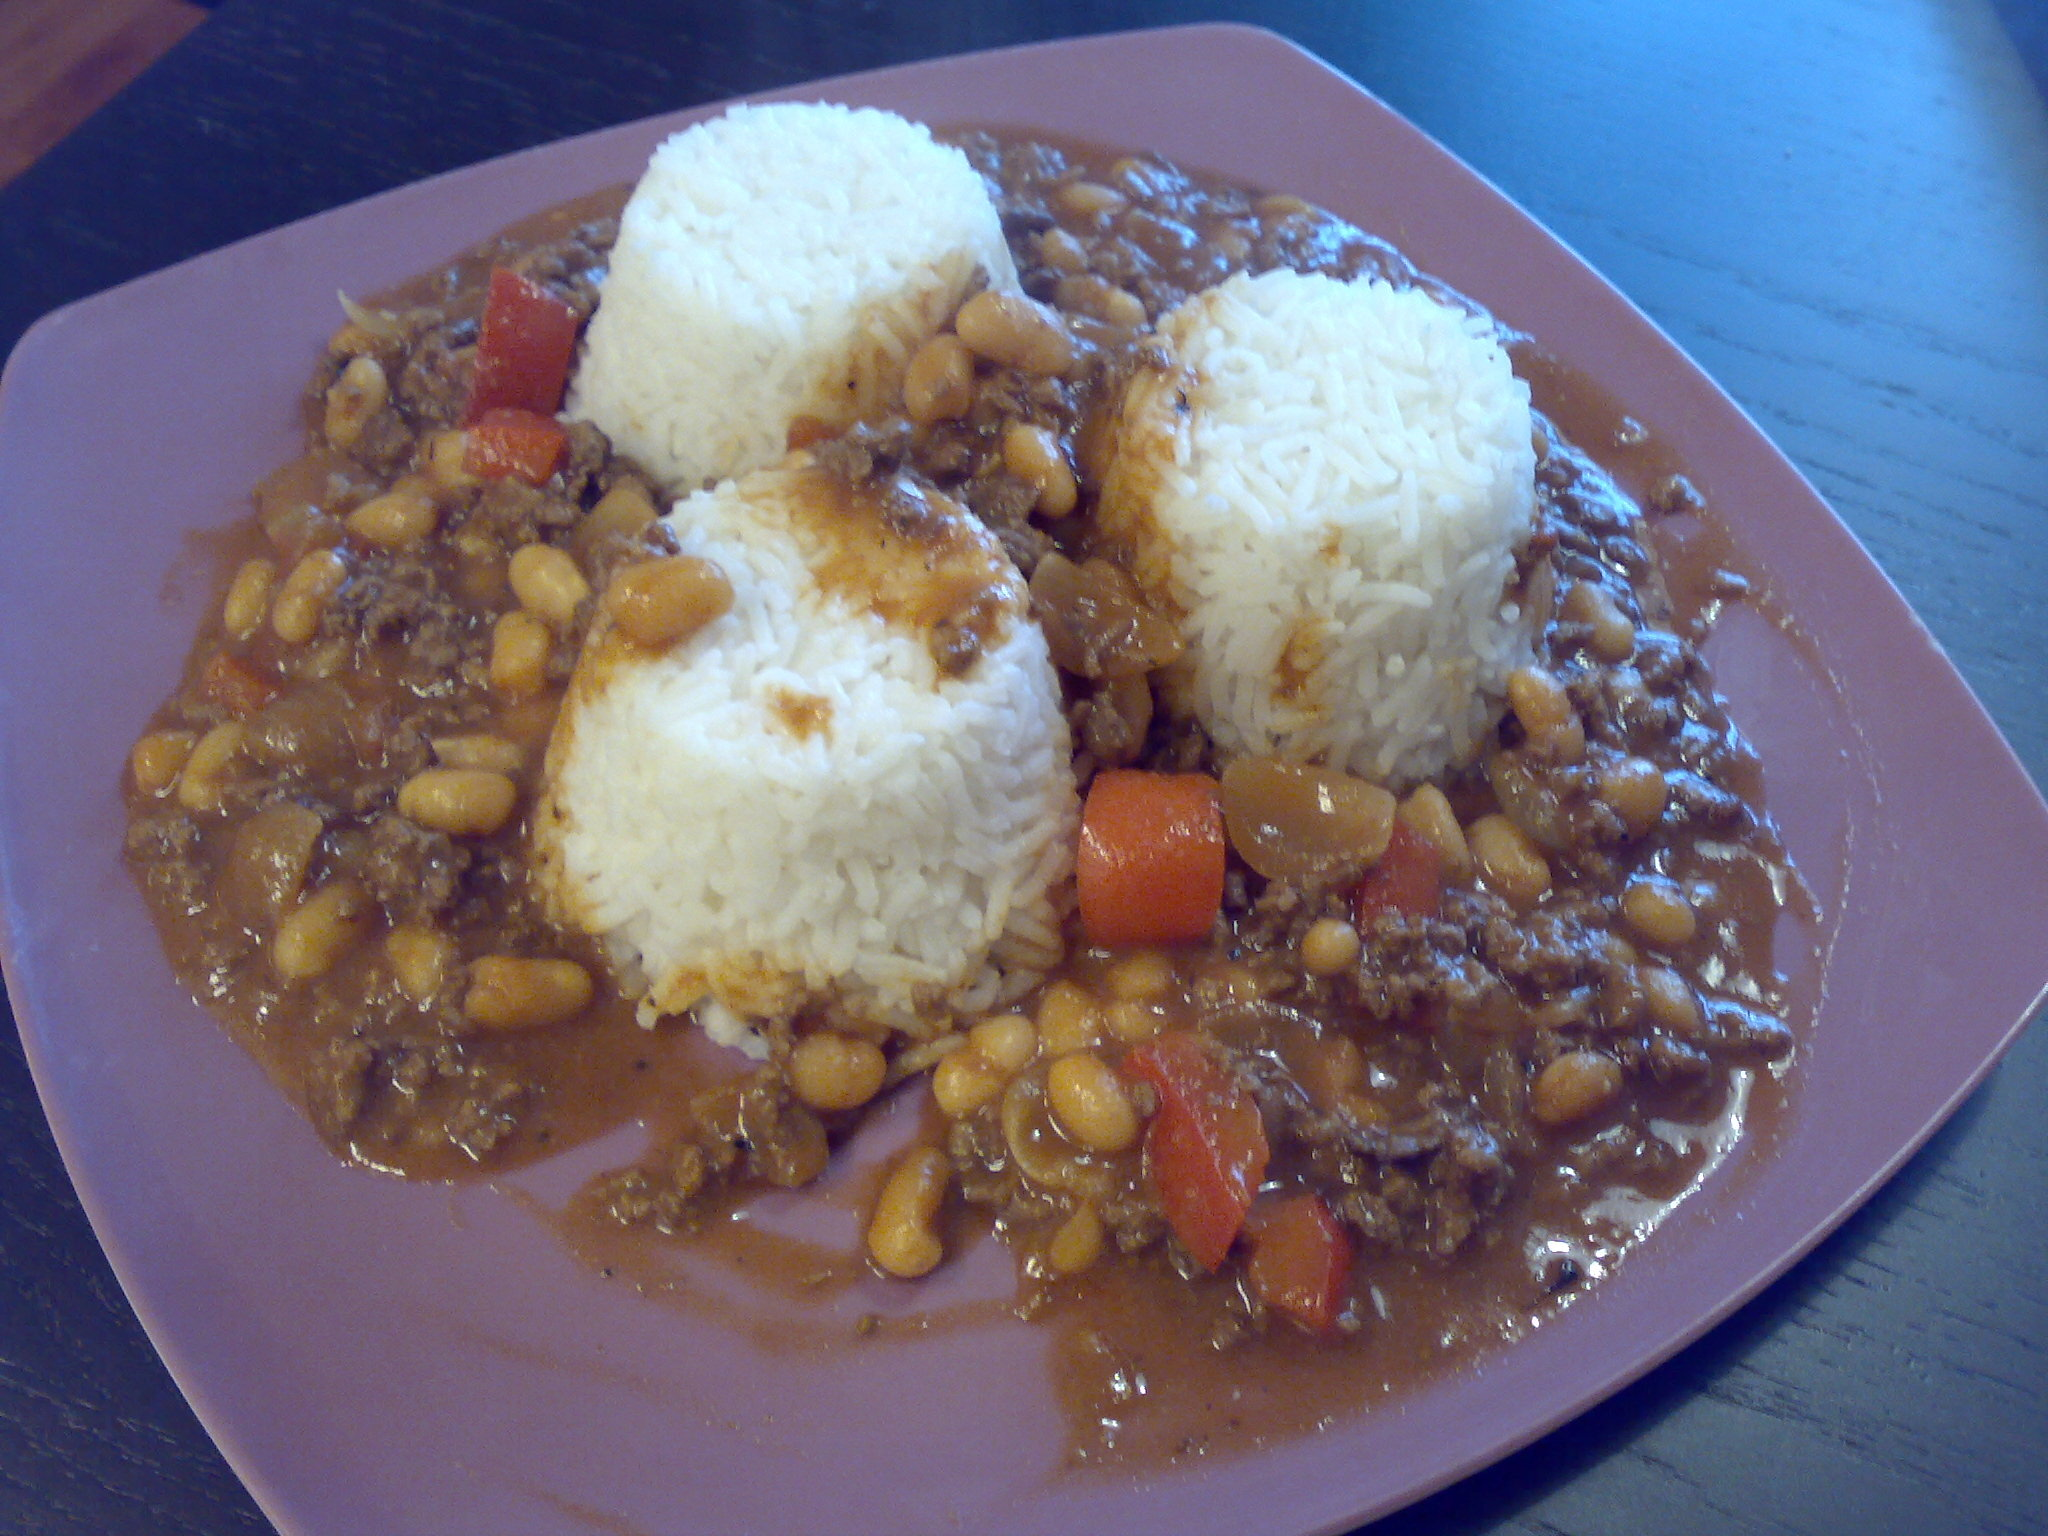 Supergod chili con carne